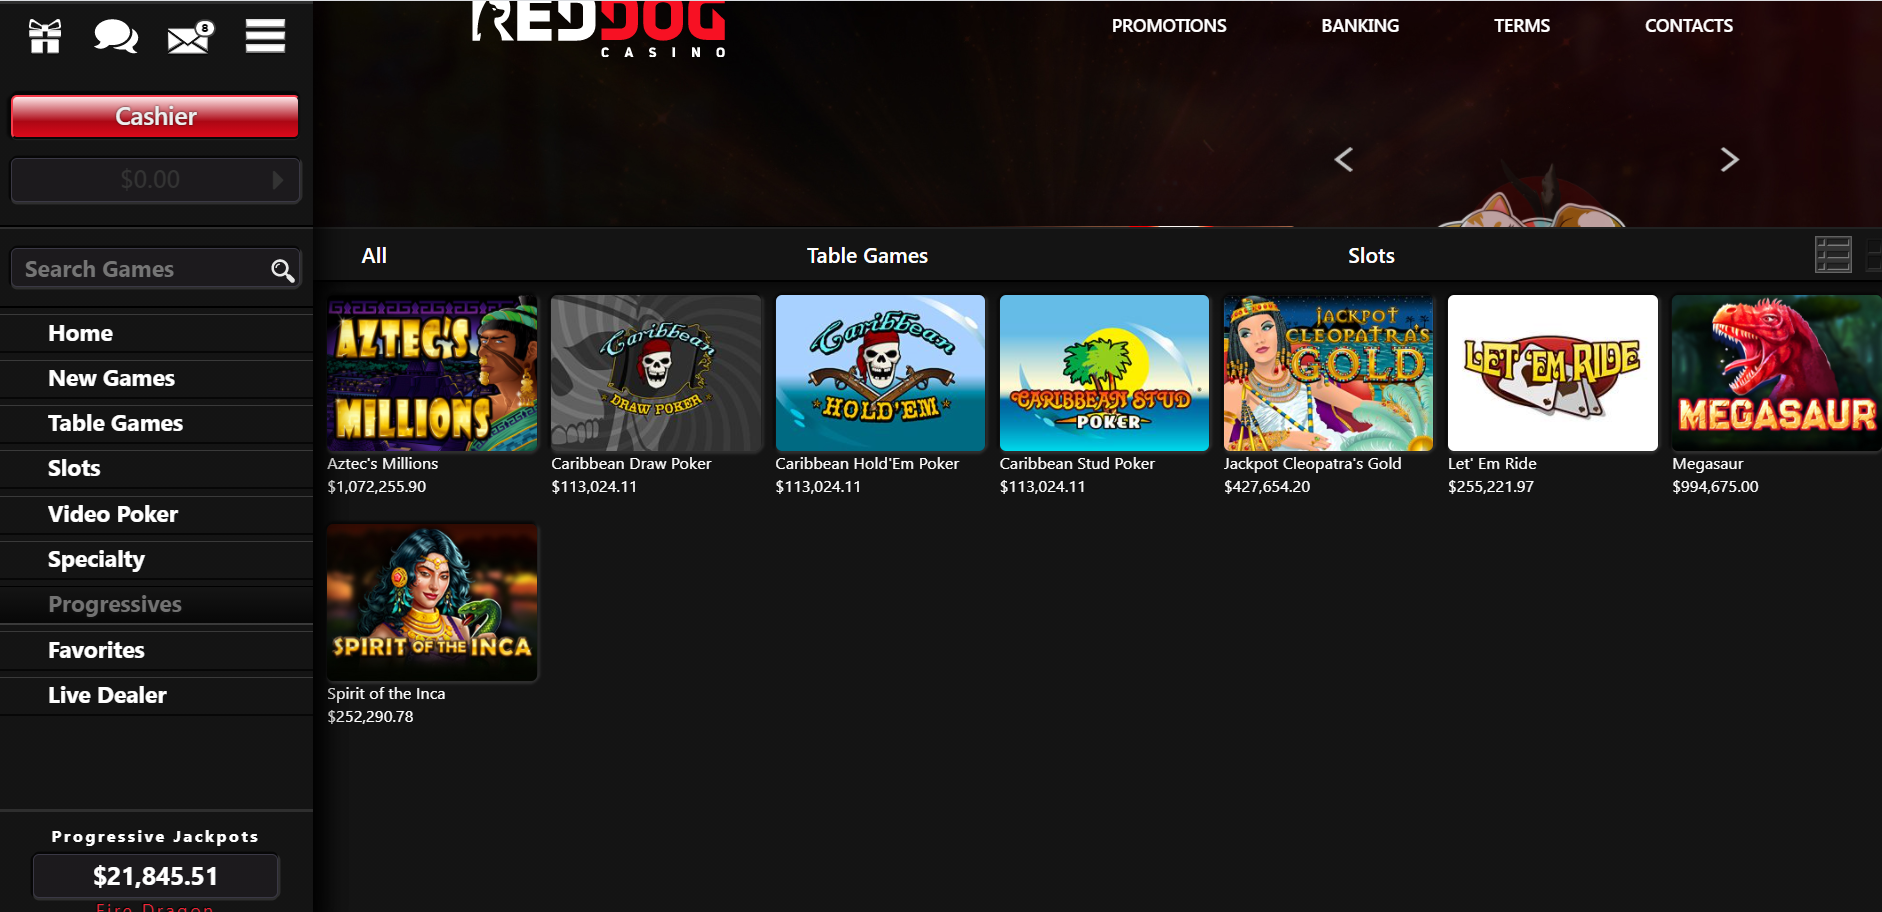 Red Dog Casino Table Games